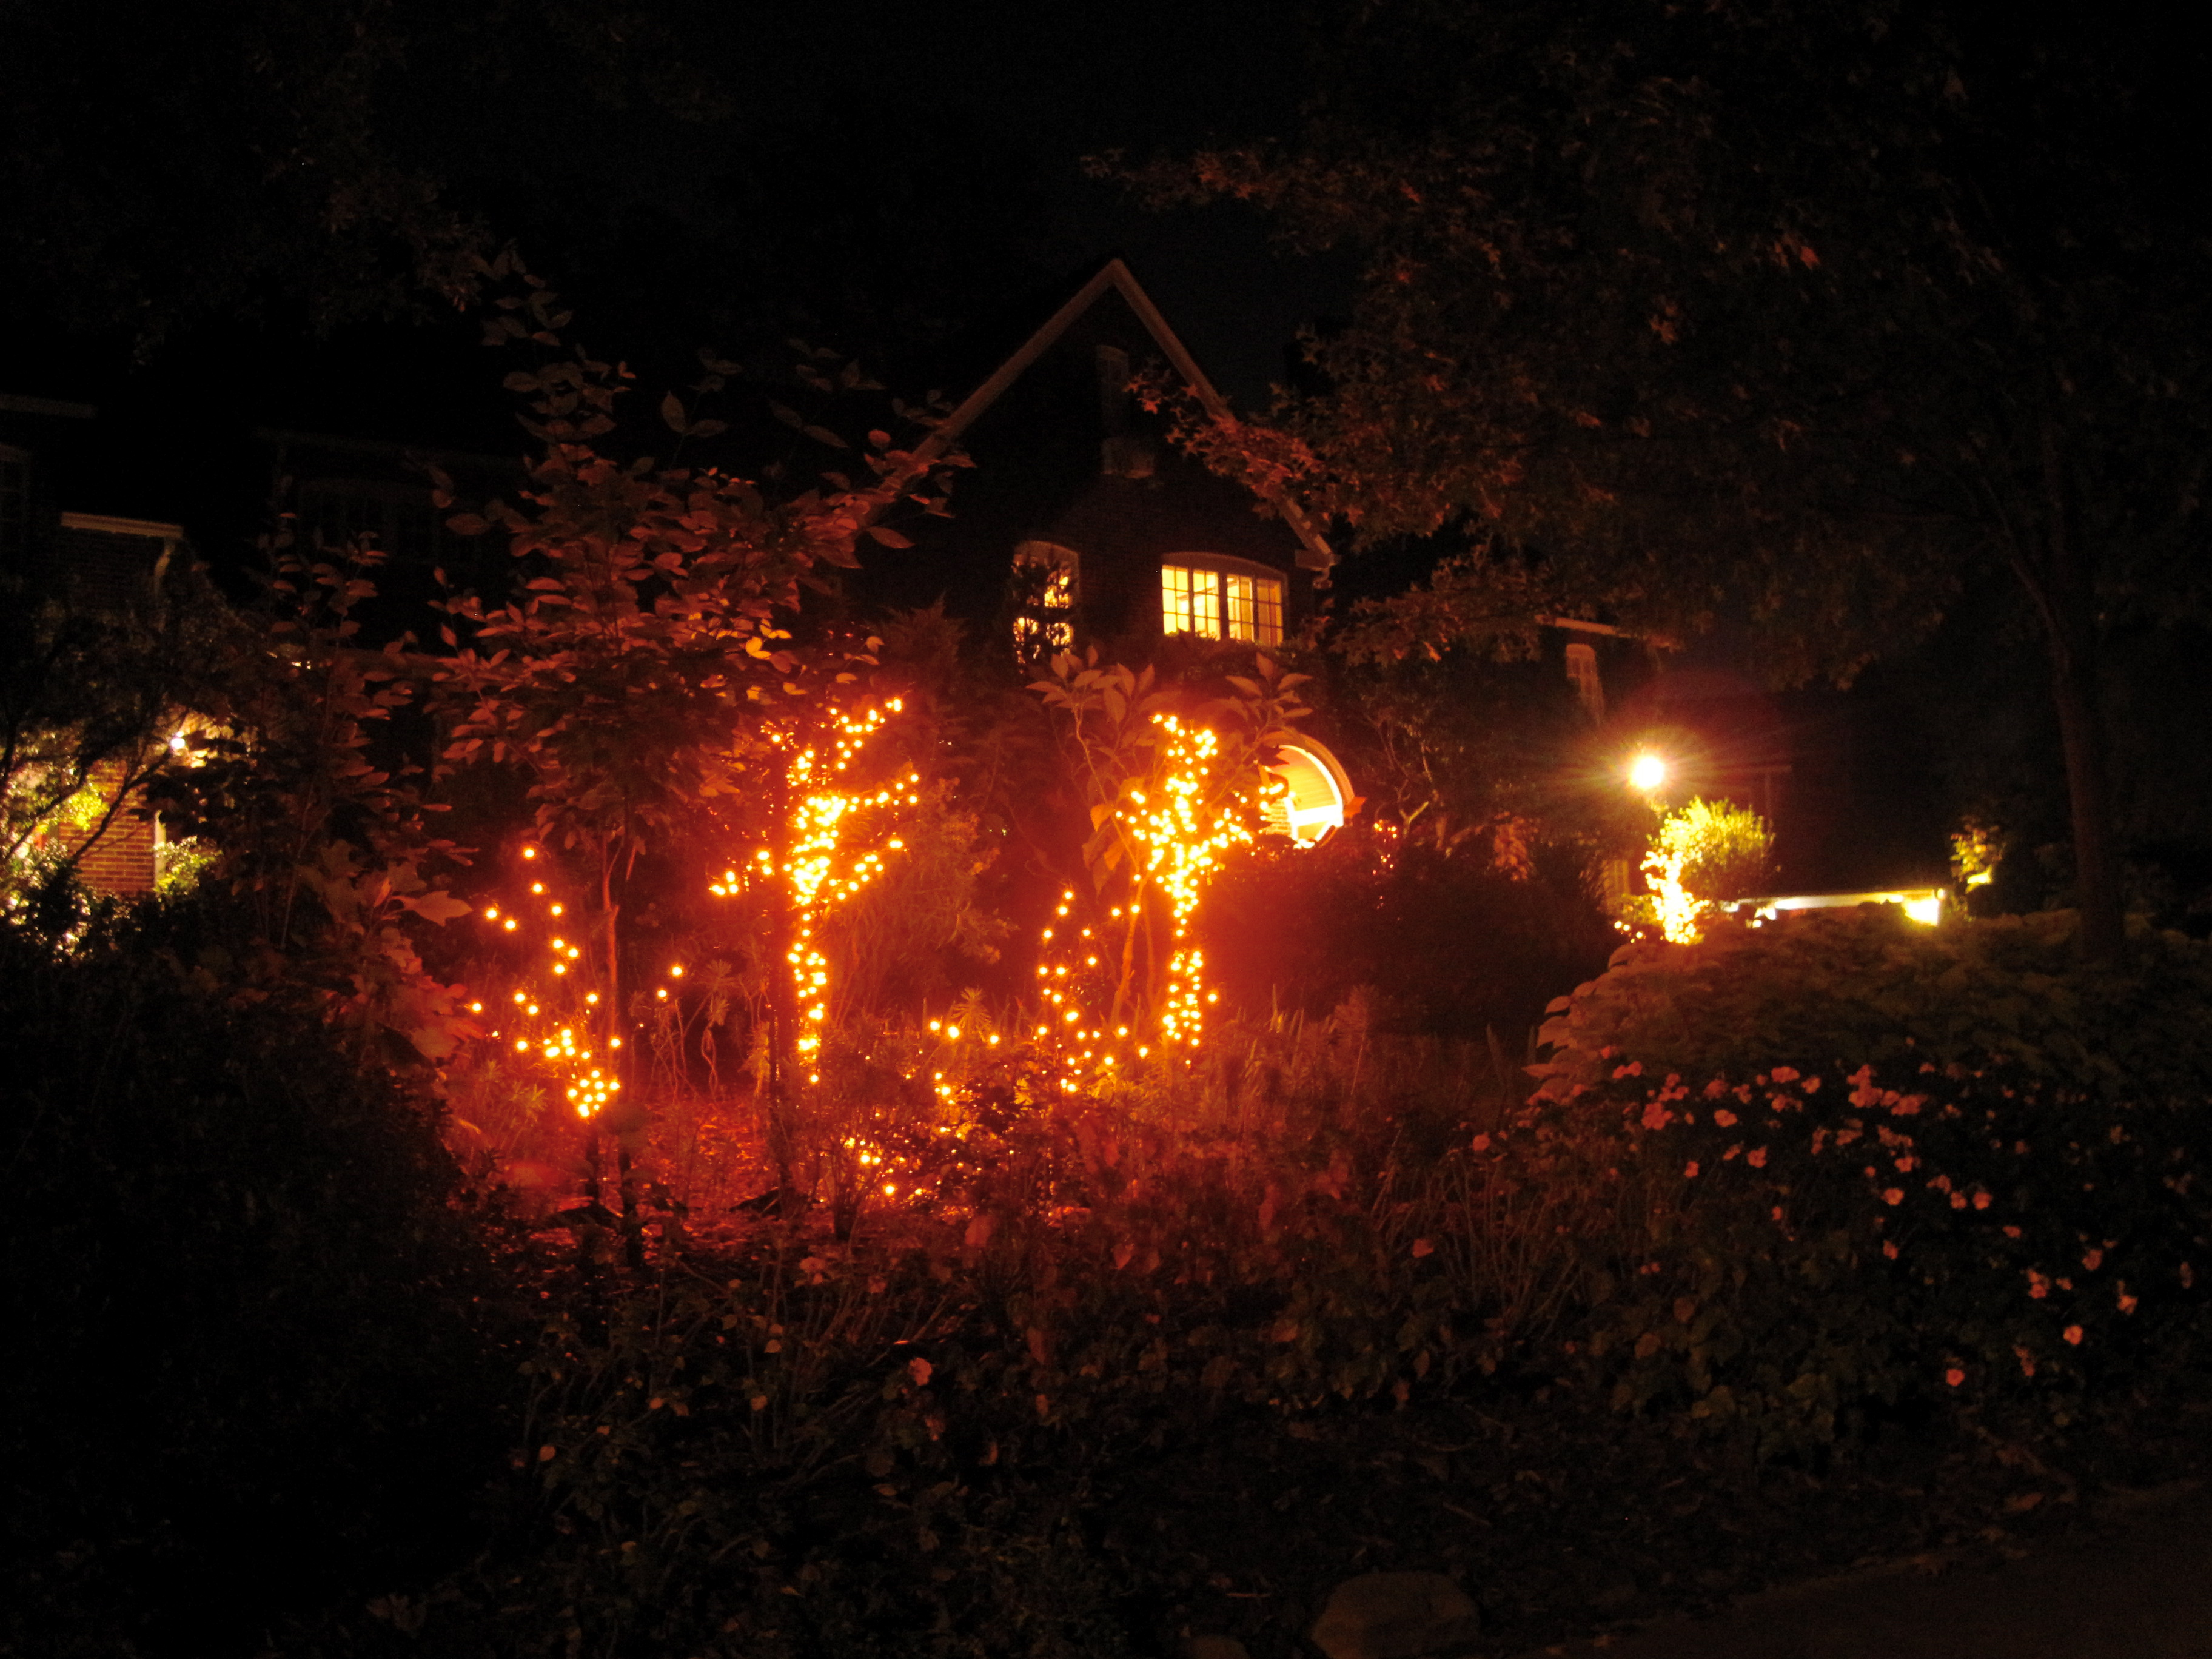 Halloween decorated mansion - I Love The Holiday Spirit Of Those Druid Hills Residents While My Halloween Night Mansion